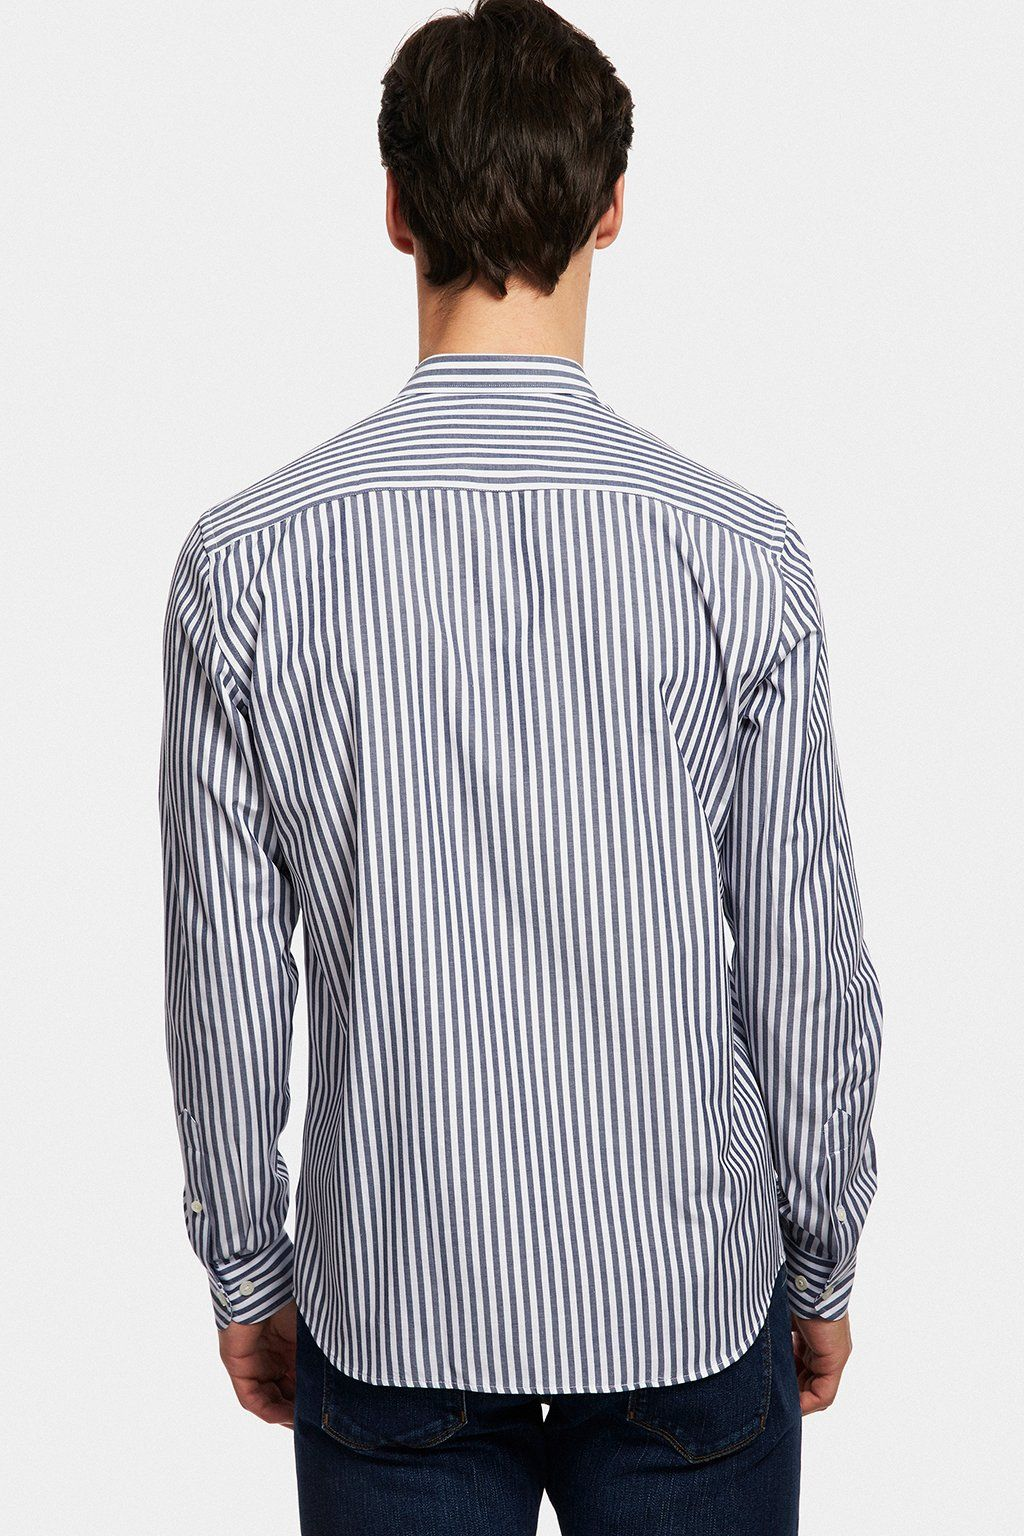 Navy blue patterned striped shirt